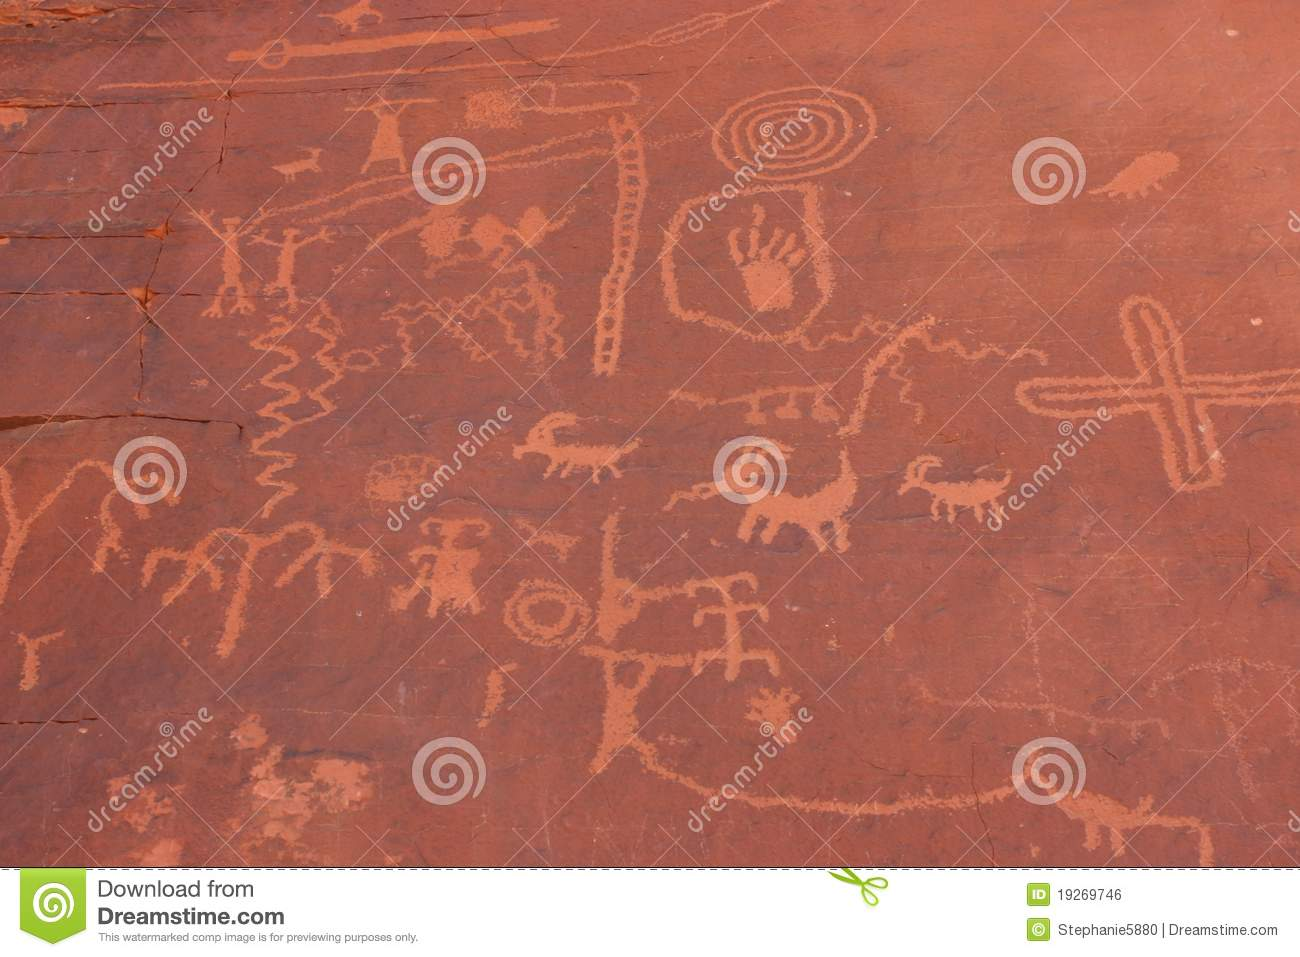 native american indian writing on rock stock photo - image of state